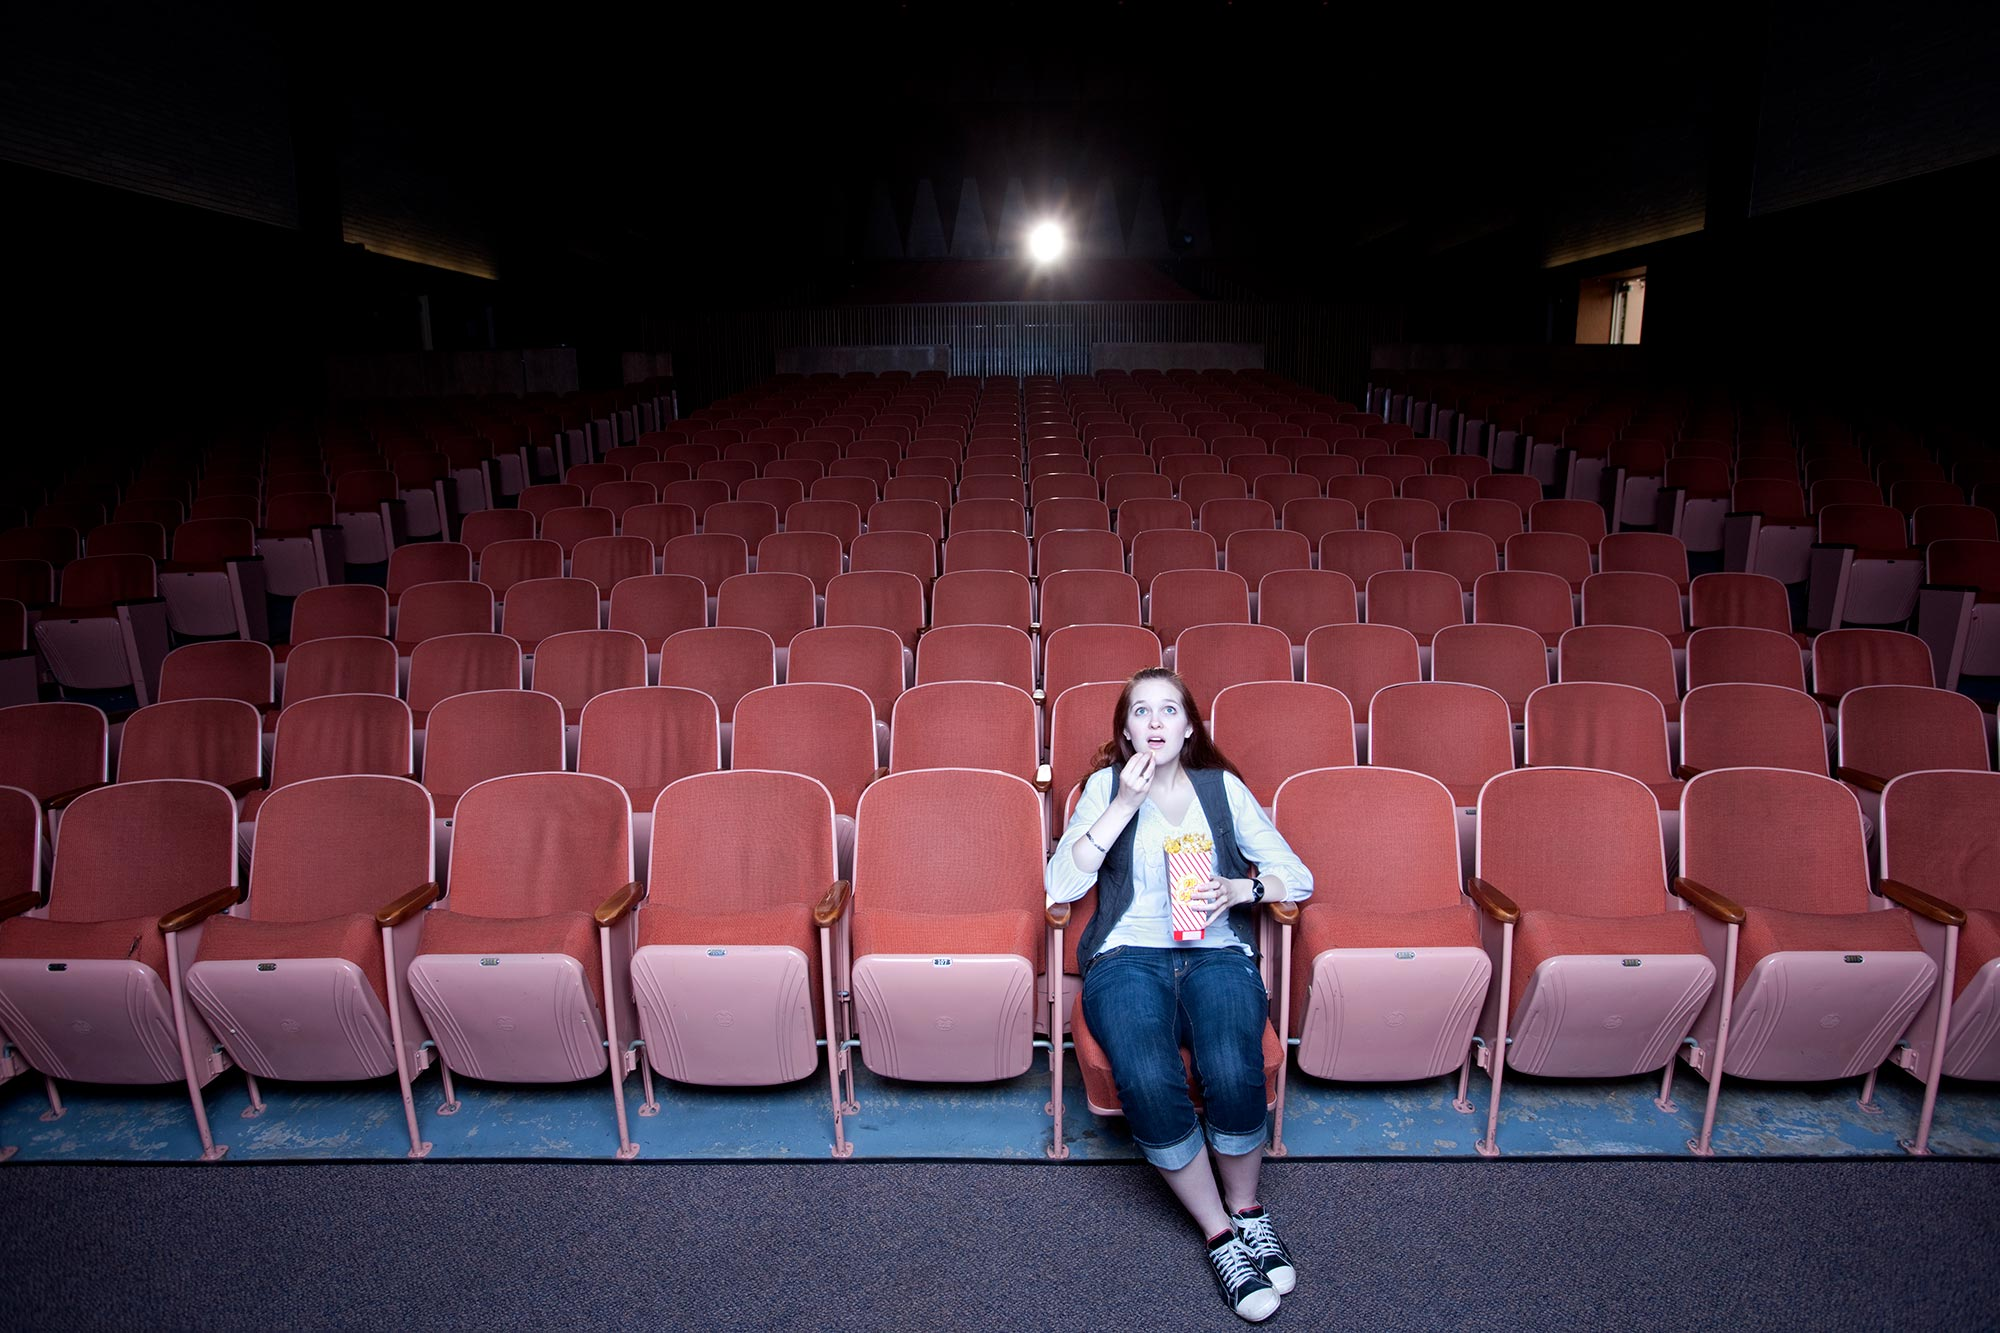 Woman watching movie alone in a theater